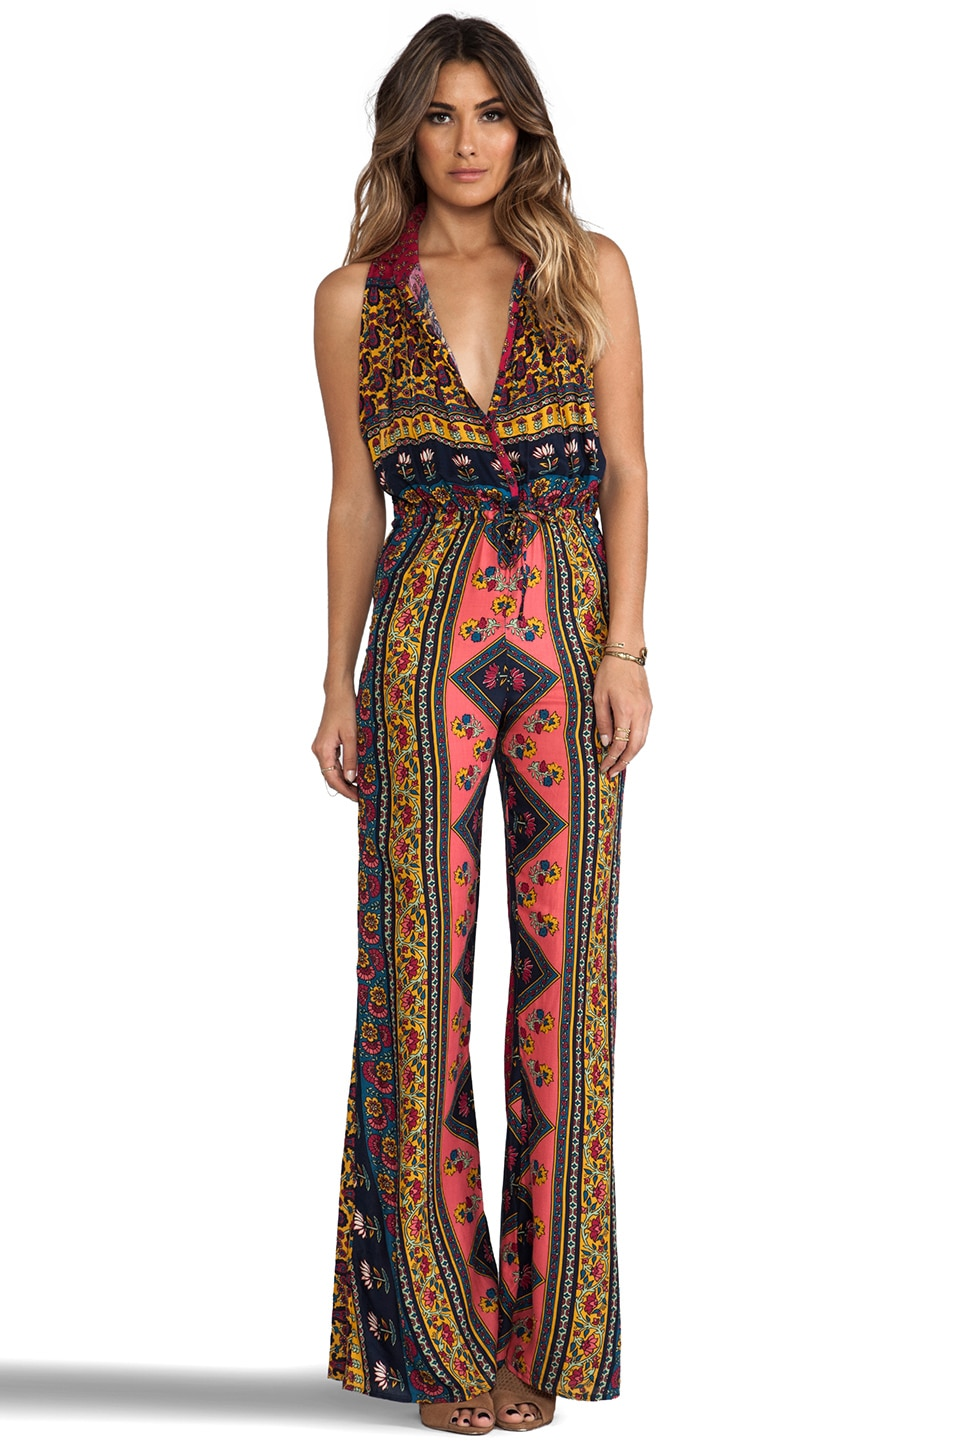 NOVELLA ROYALE Platform Holly Romper in Red Ethnic Floral